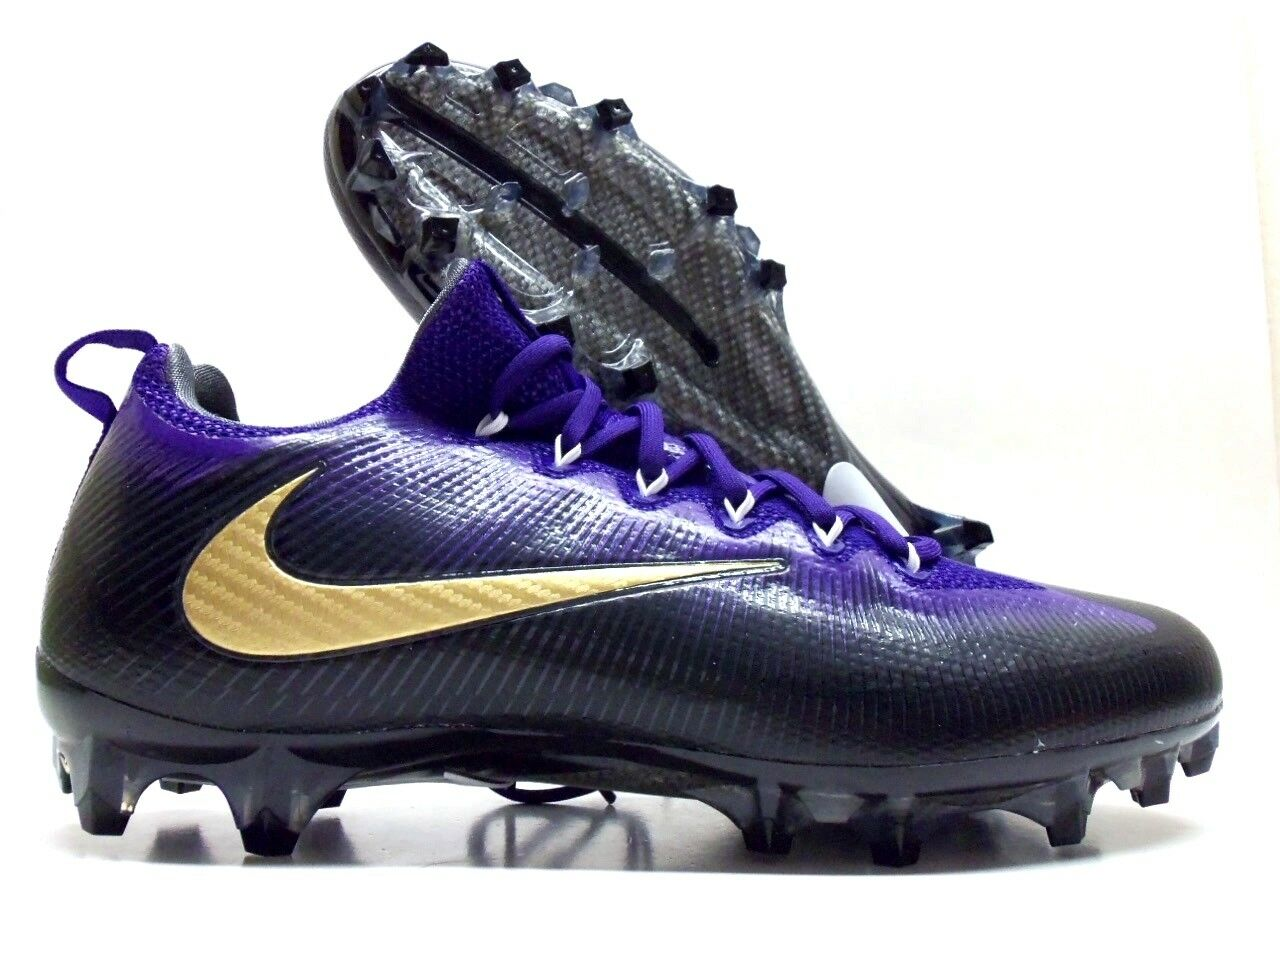 NIKE VAPOR UNTOUCHABLE PRO iD FOOTBALL CLEATS BLACK/PURPLE MEN'S 12 [872065-991]